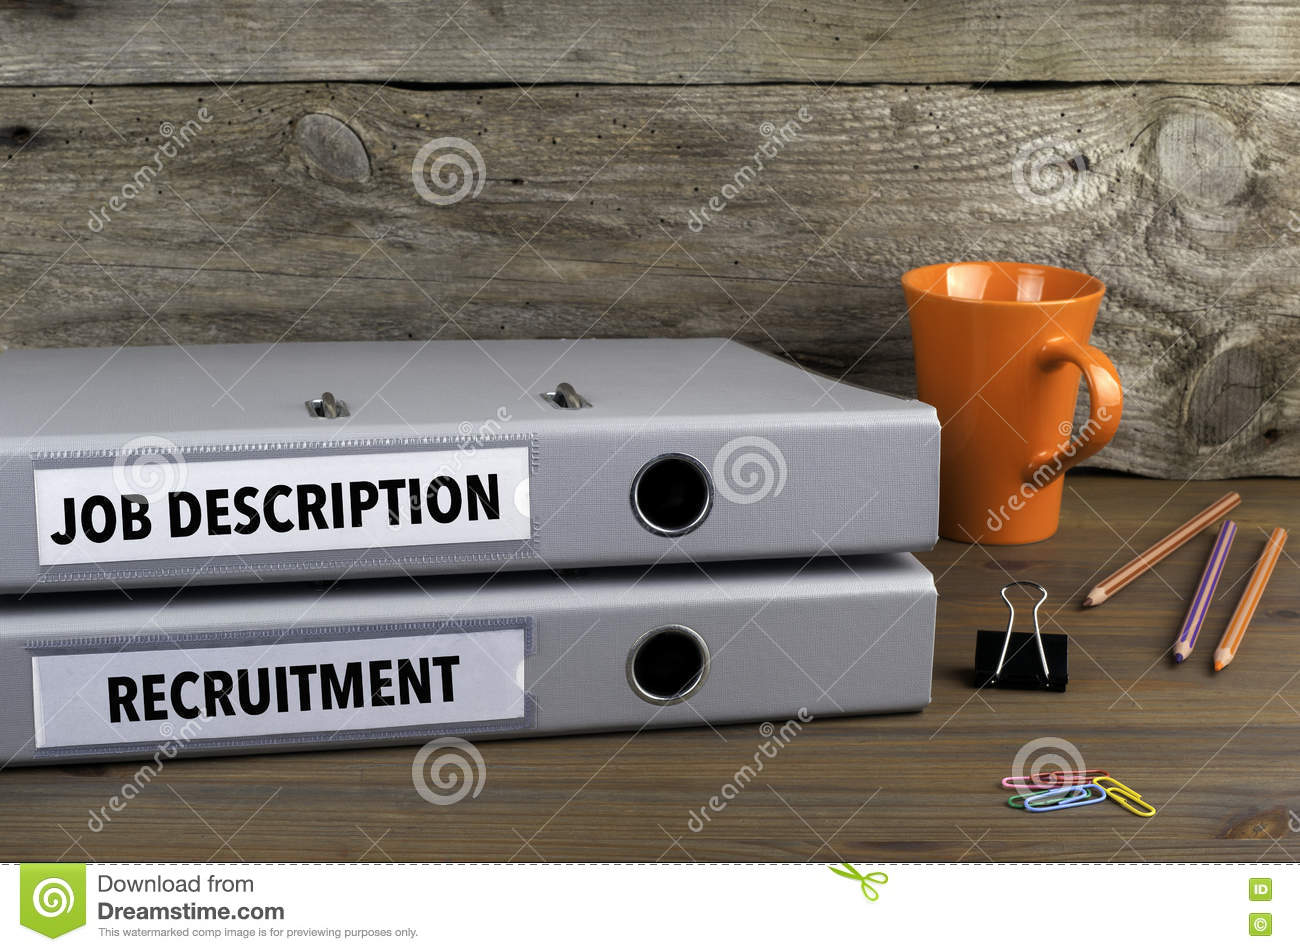 Job Description and Recruitment - two folders on wooden office d